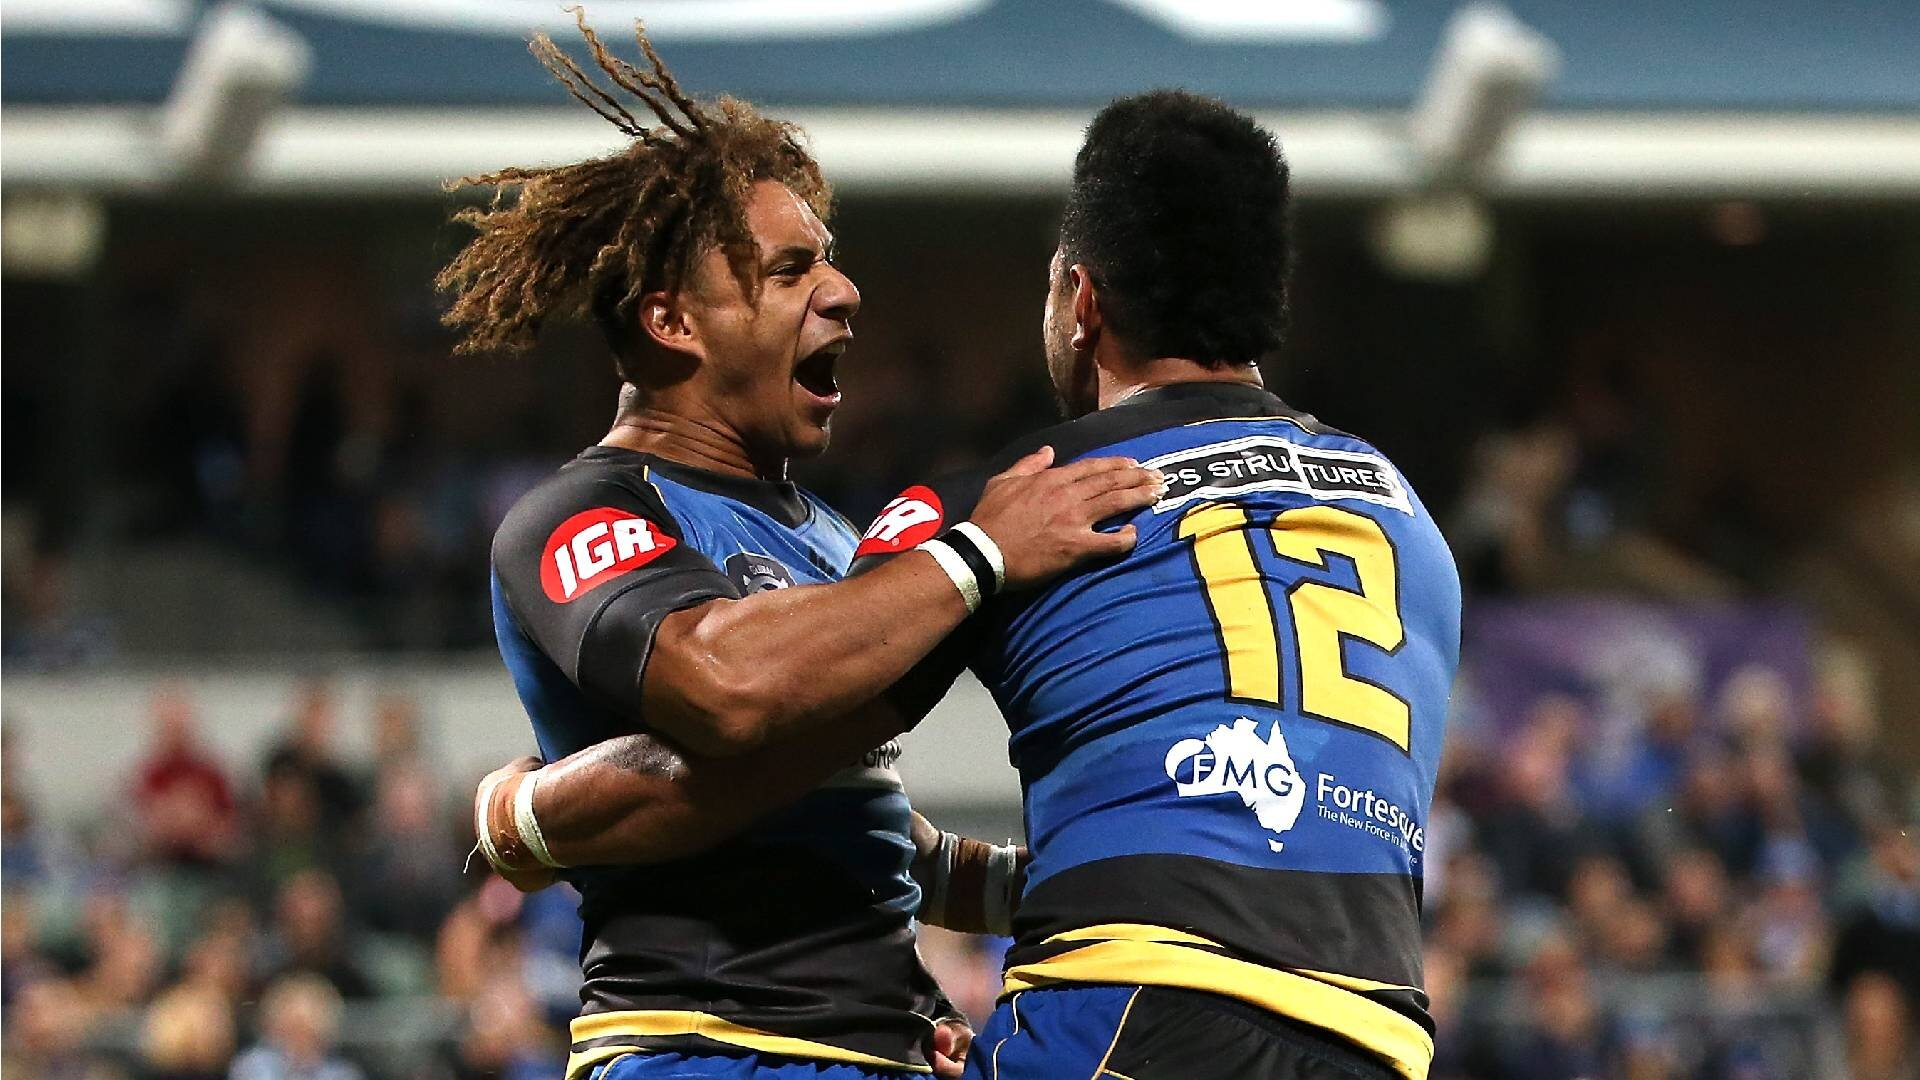 Western Force handed second chance in Australian rugby reboot